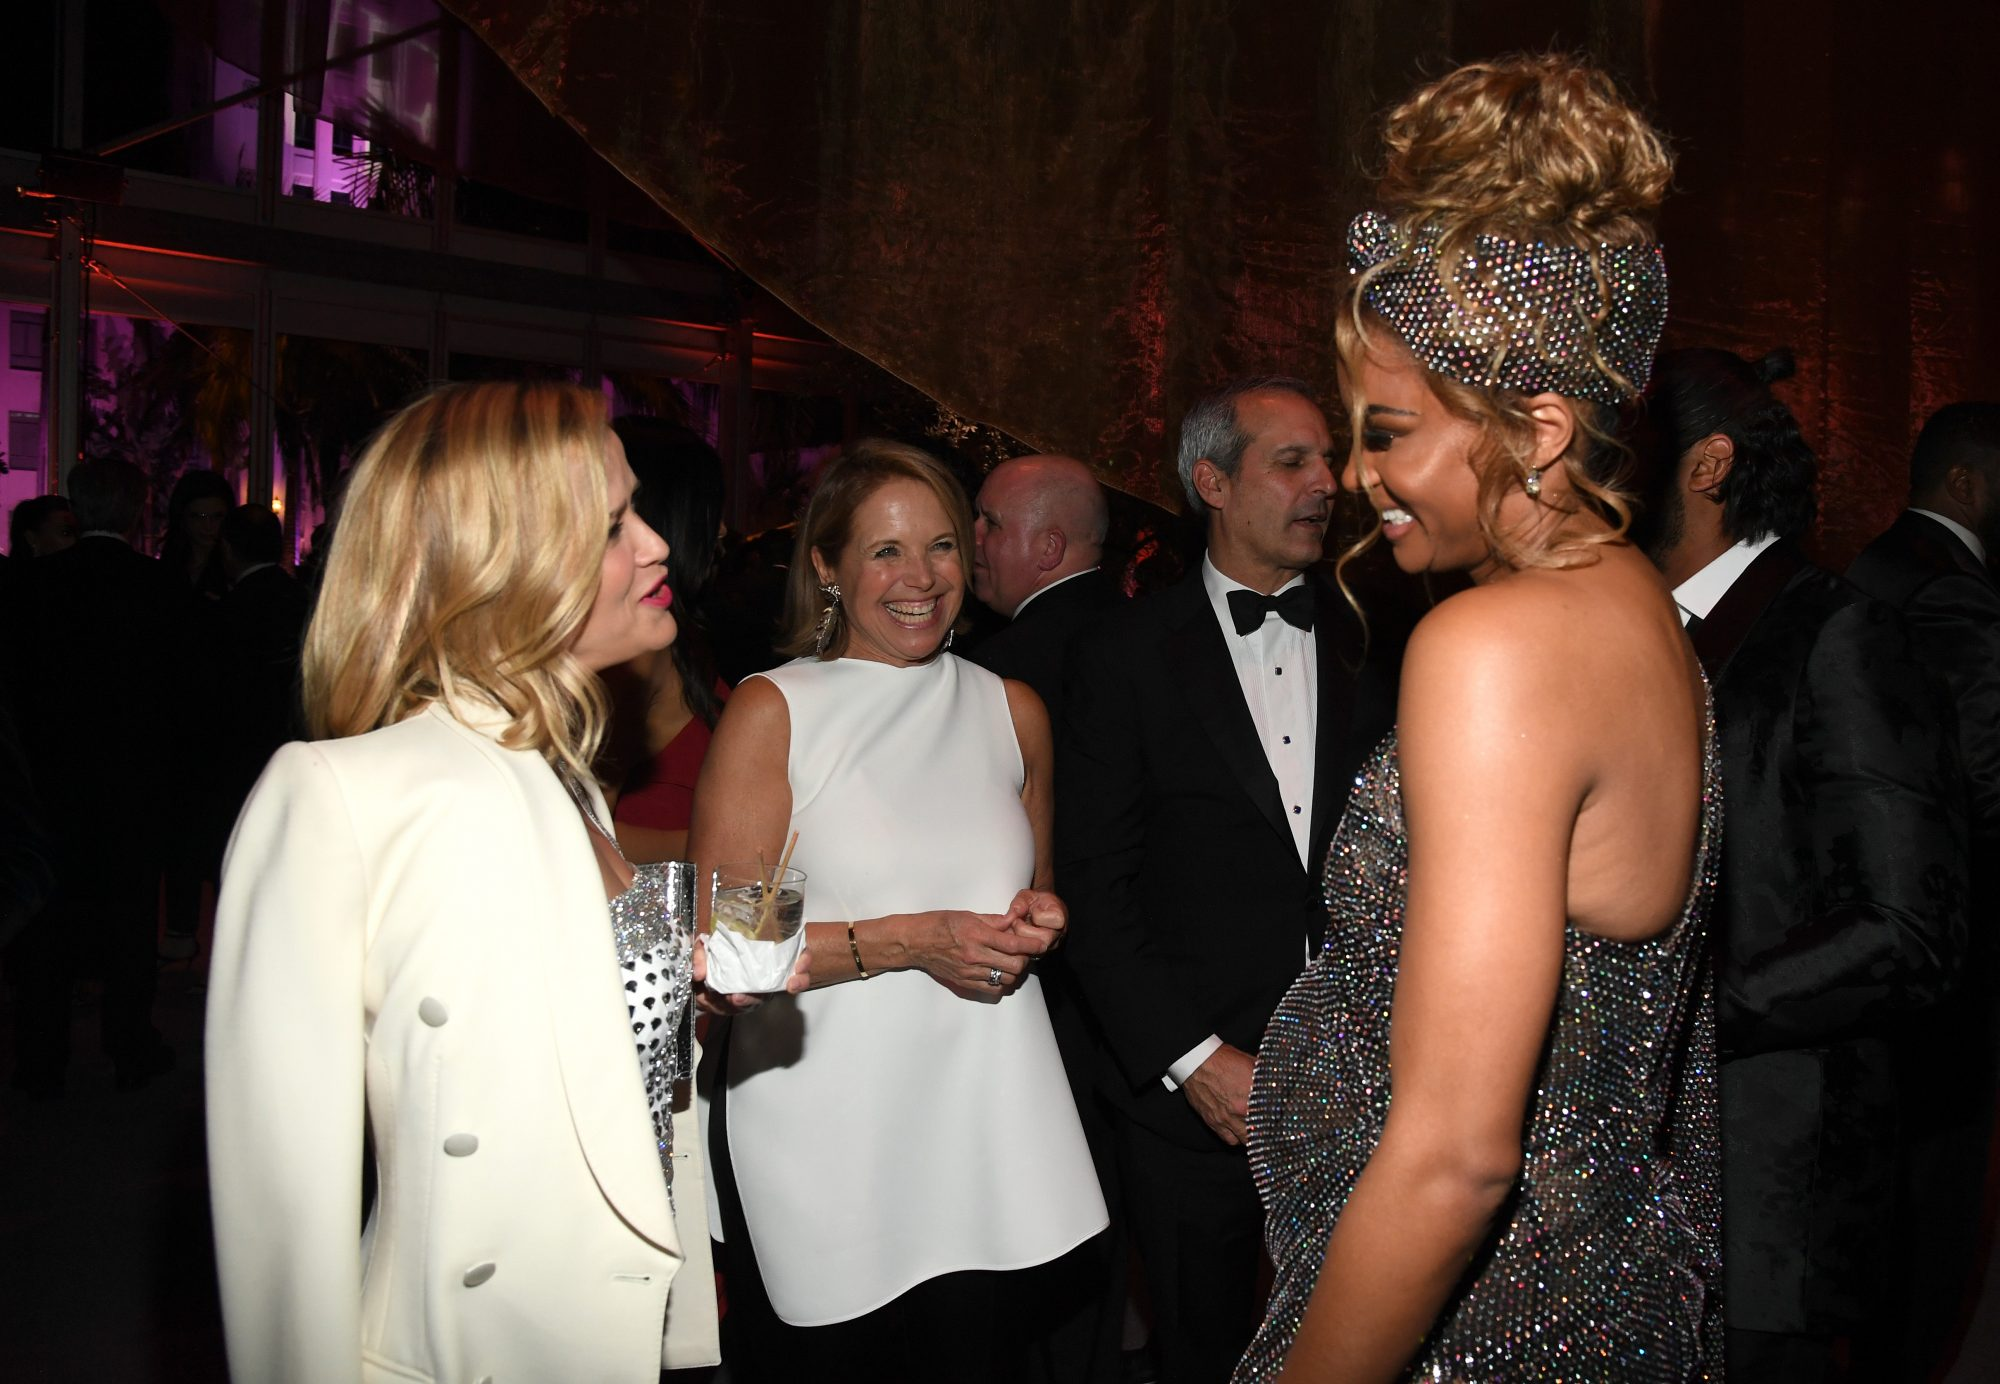 Reese Witherspoon, Katie Couric, and Ciara